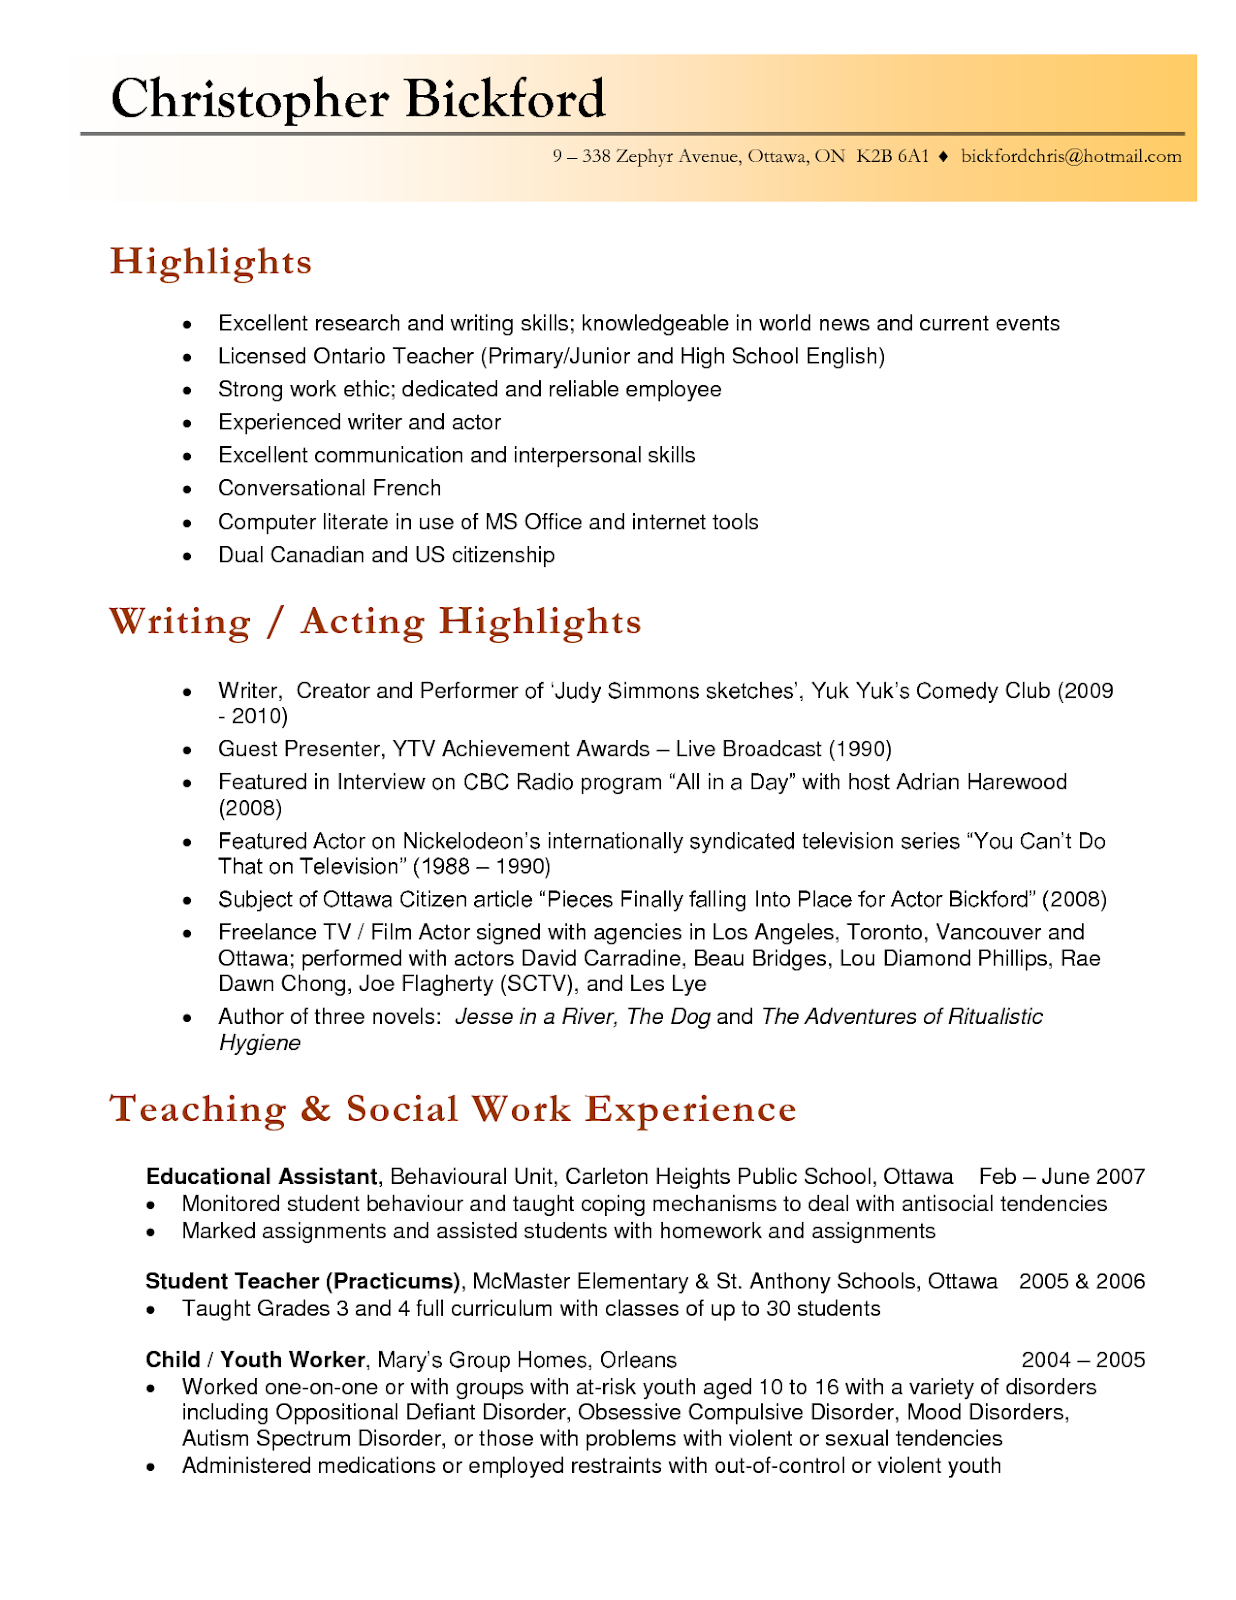 preschool teacher resume sample, preschool teacher resume sample objective, preschool teacher resume samples free 2019 , preschool teacher resume example, preschool teacher curriculum vitae sample, preschool teacher assistant resume sample, preschool teacher job resume sample 2020, lead preschool teacher resume sample, preschool teaching assistant resume sample, sample montessori preschool teacher resume